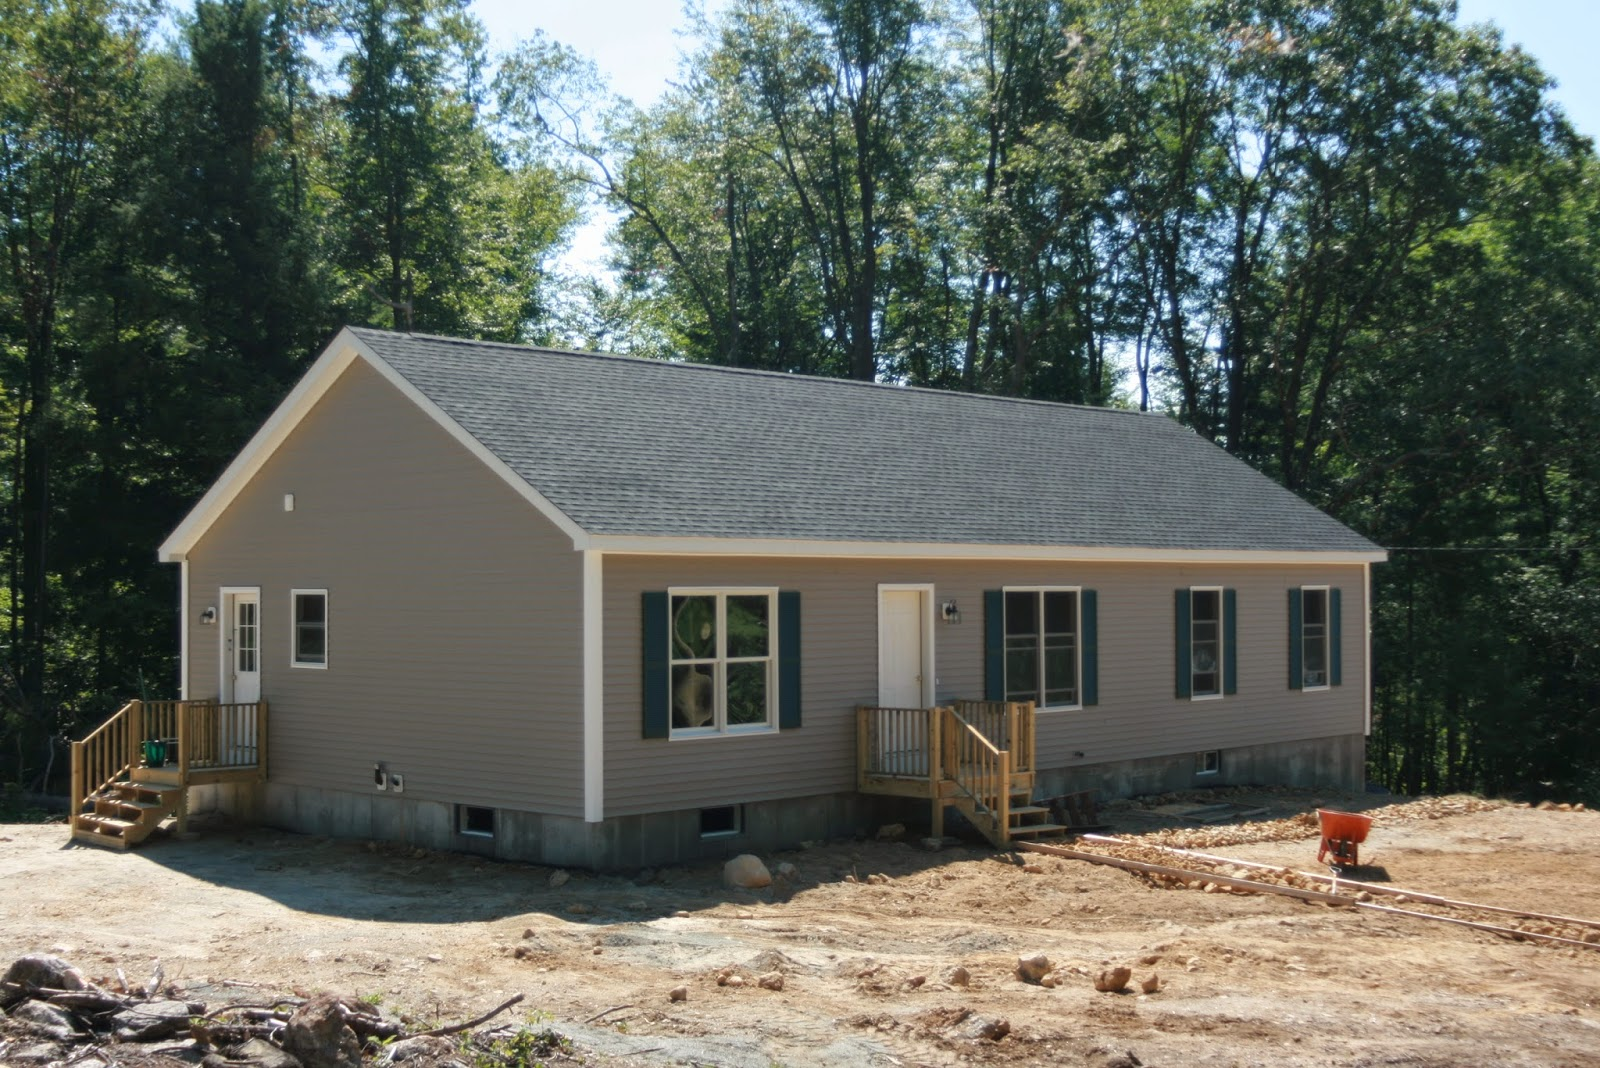 Modular home construction costs home design for Small house construction cost